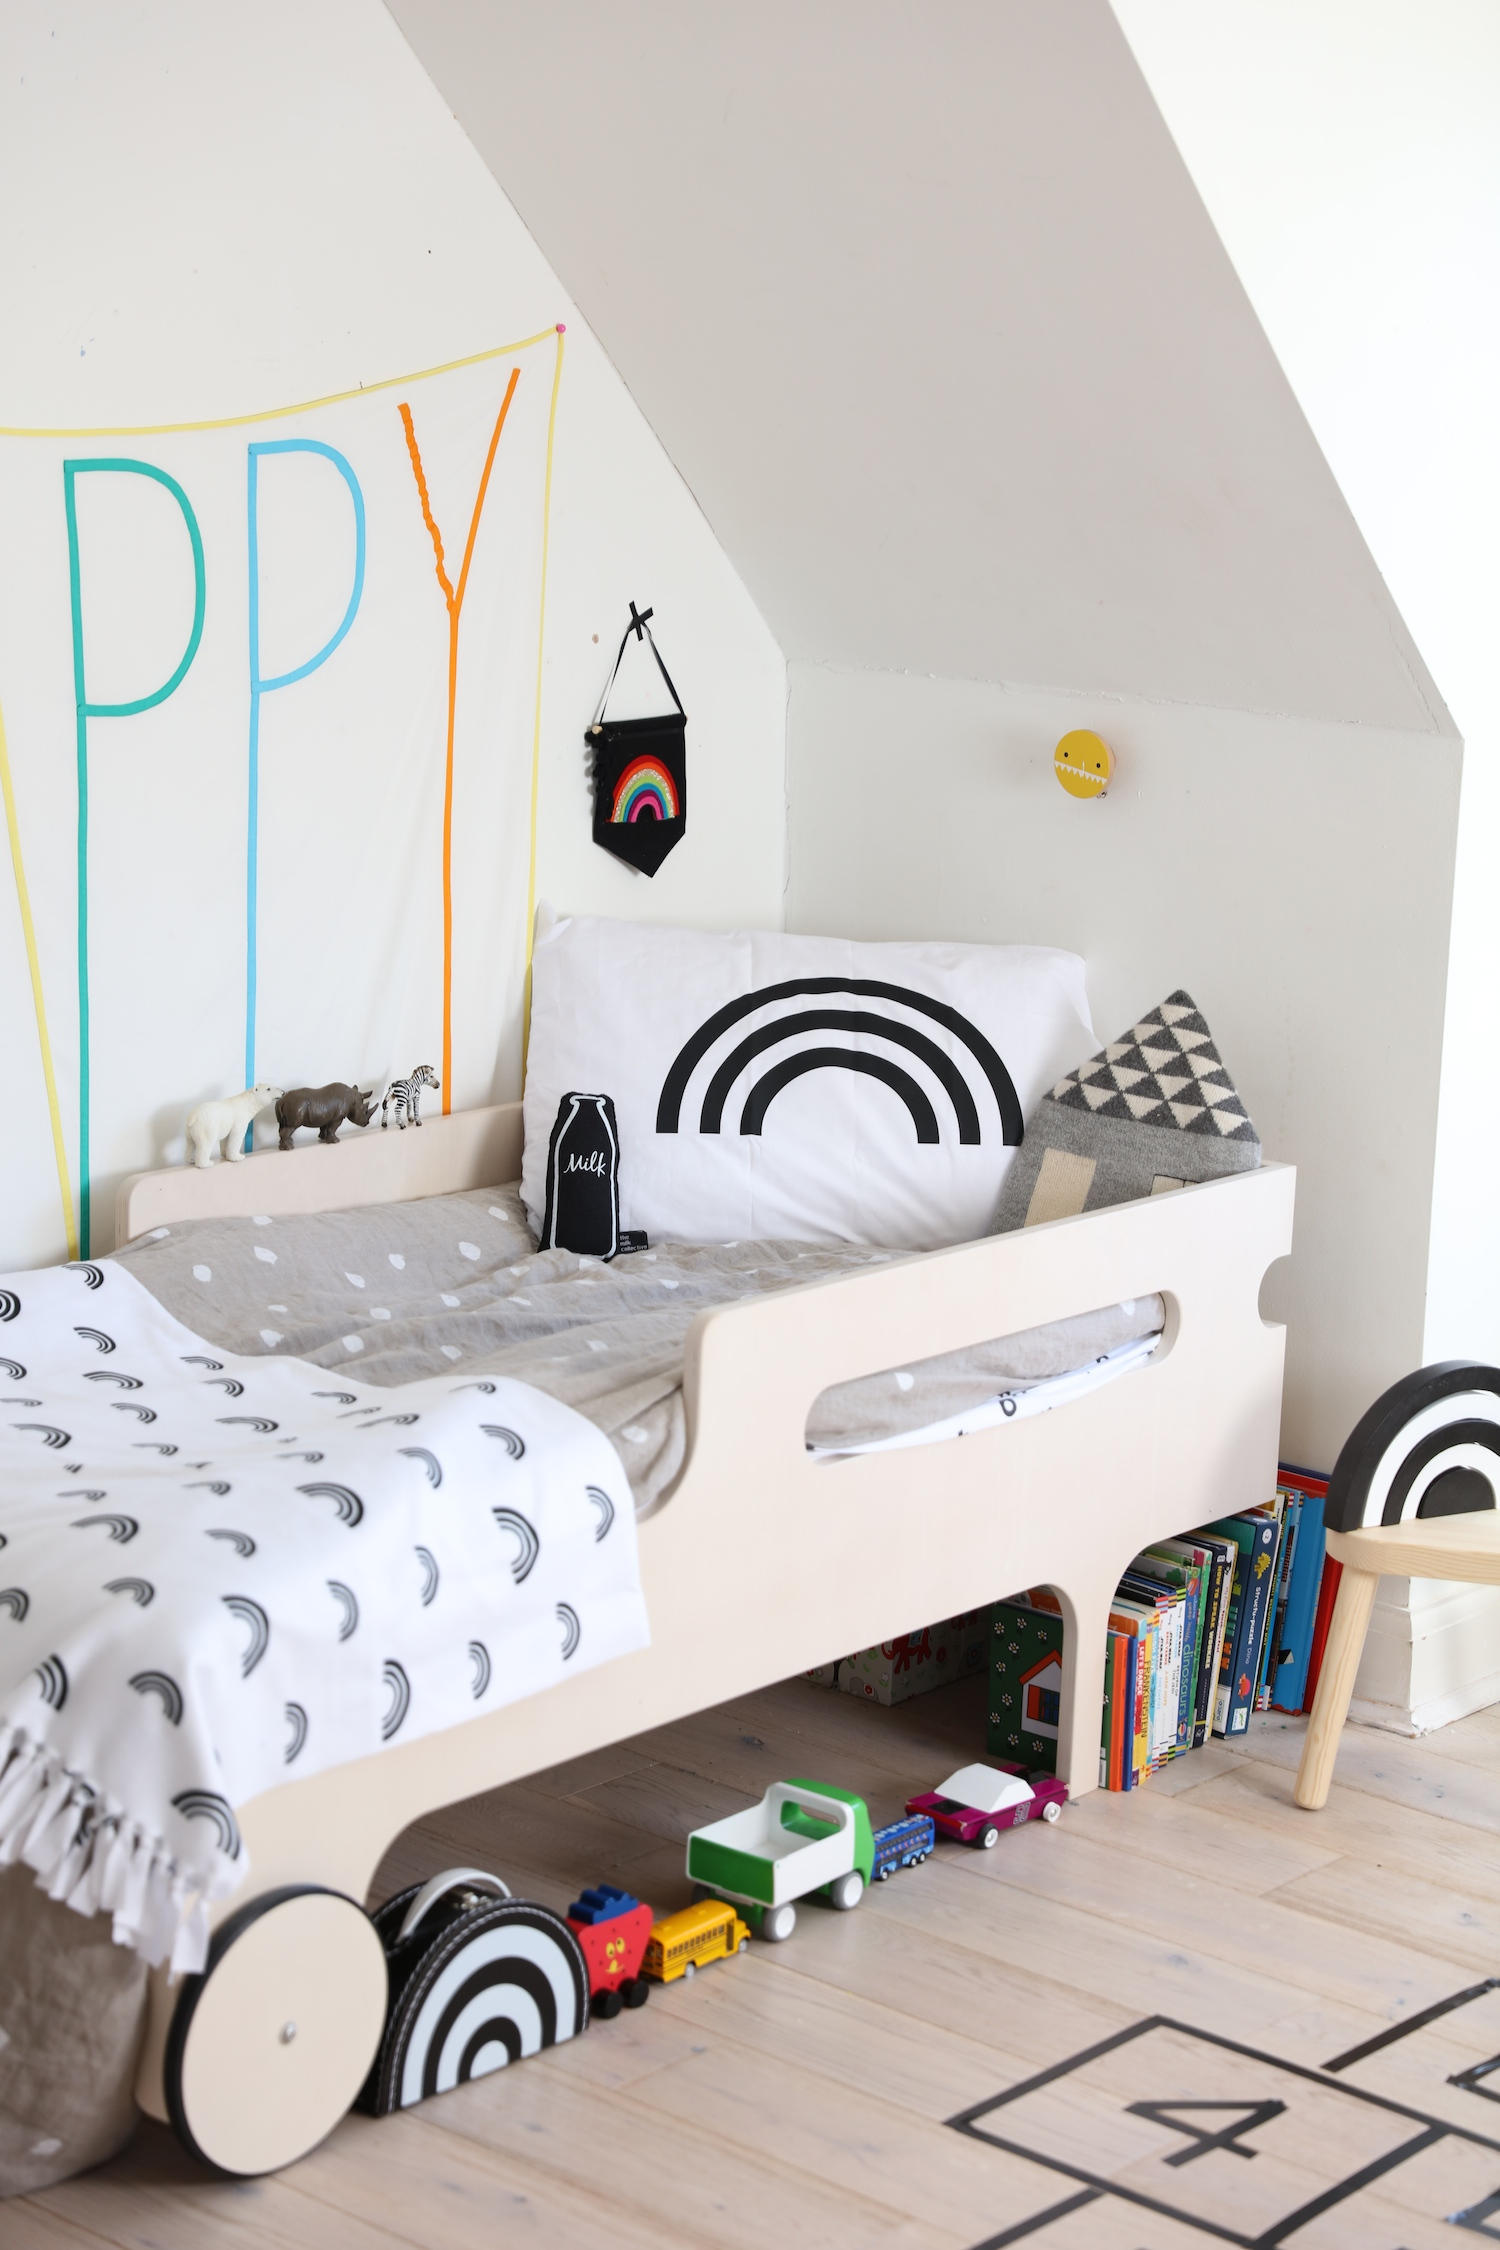 Jaxon_james_kids_interior_bedroom_rafa_kids